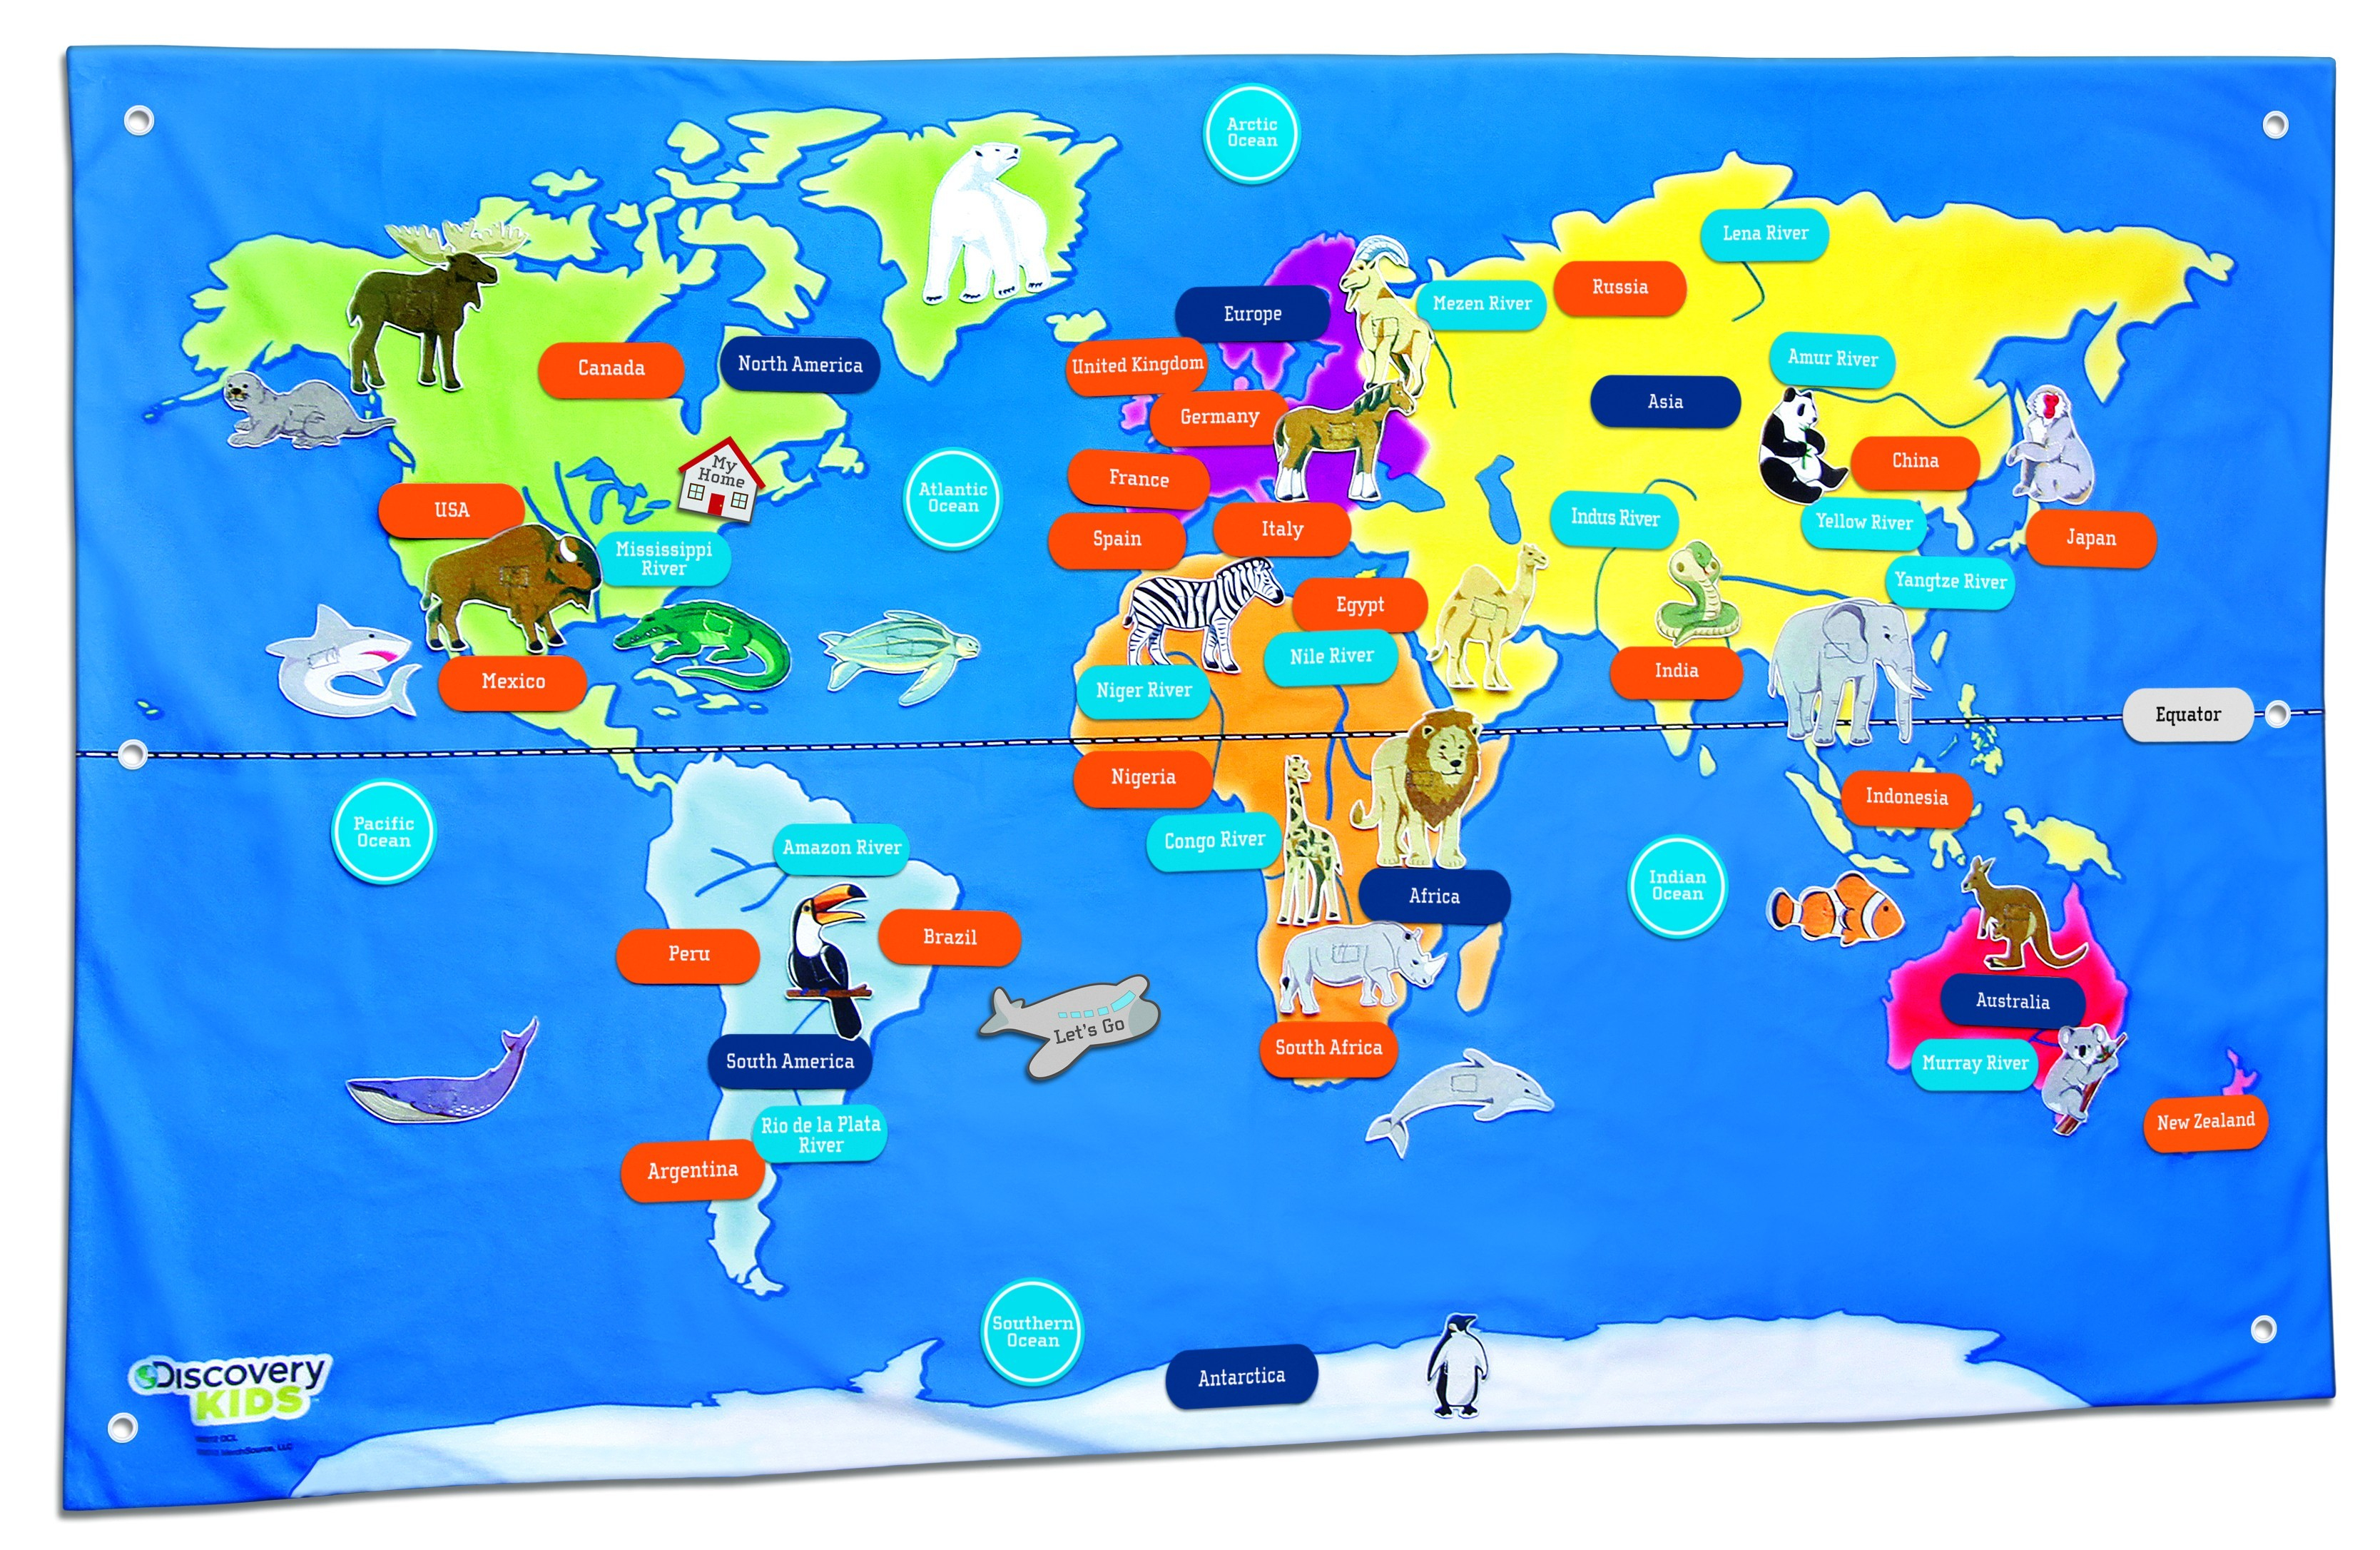 Printable Map Of Asia For Kids - World Wide Maps - Free Printable Maps For Kids